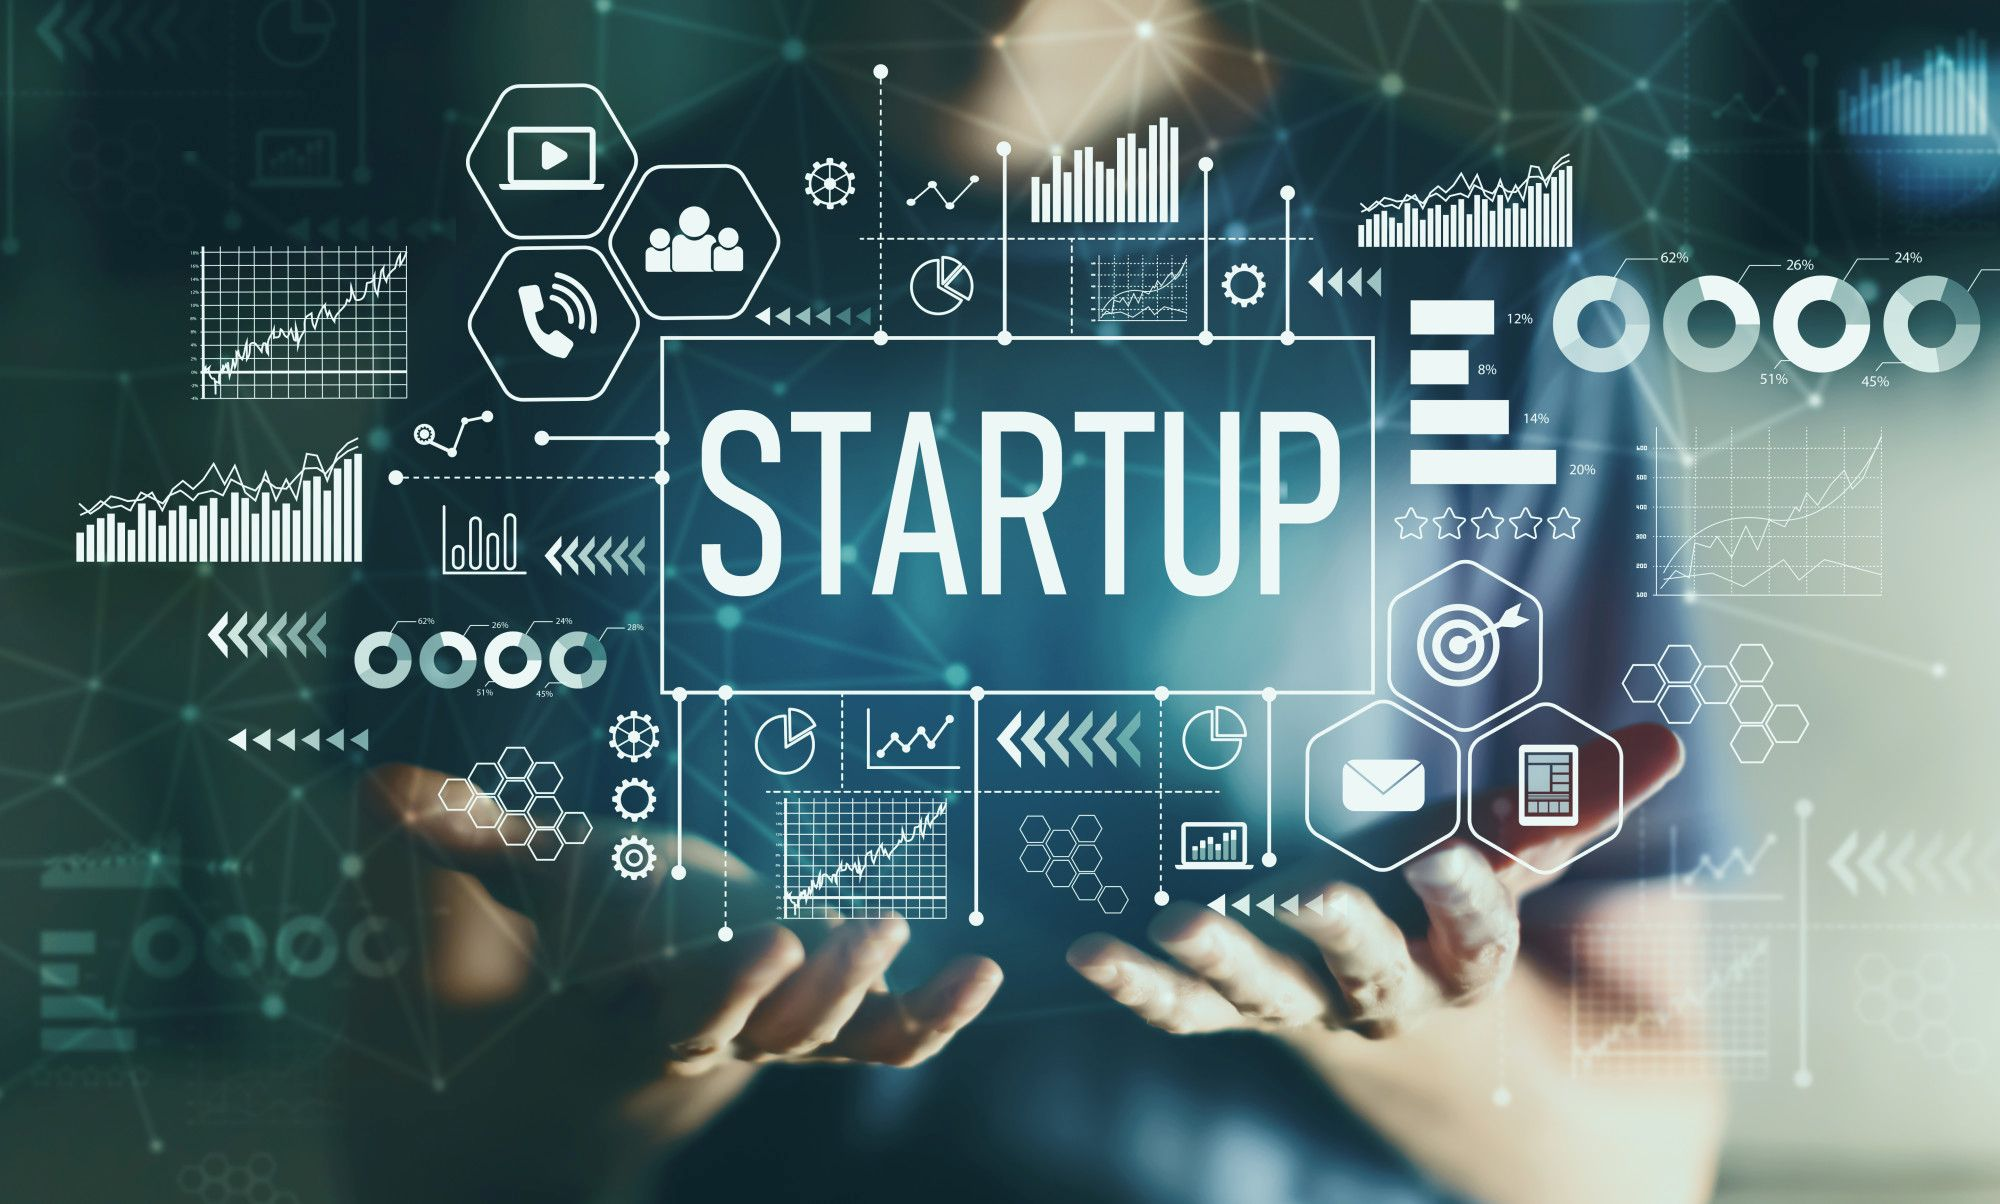 Startup with young man